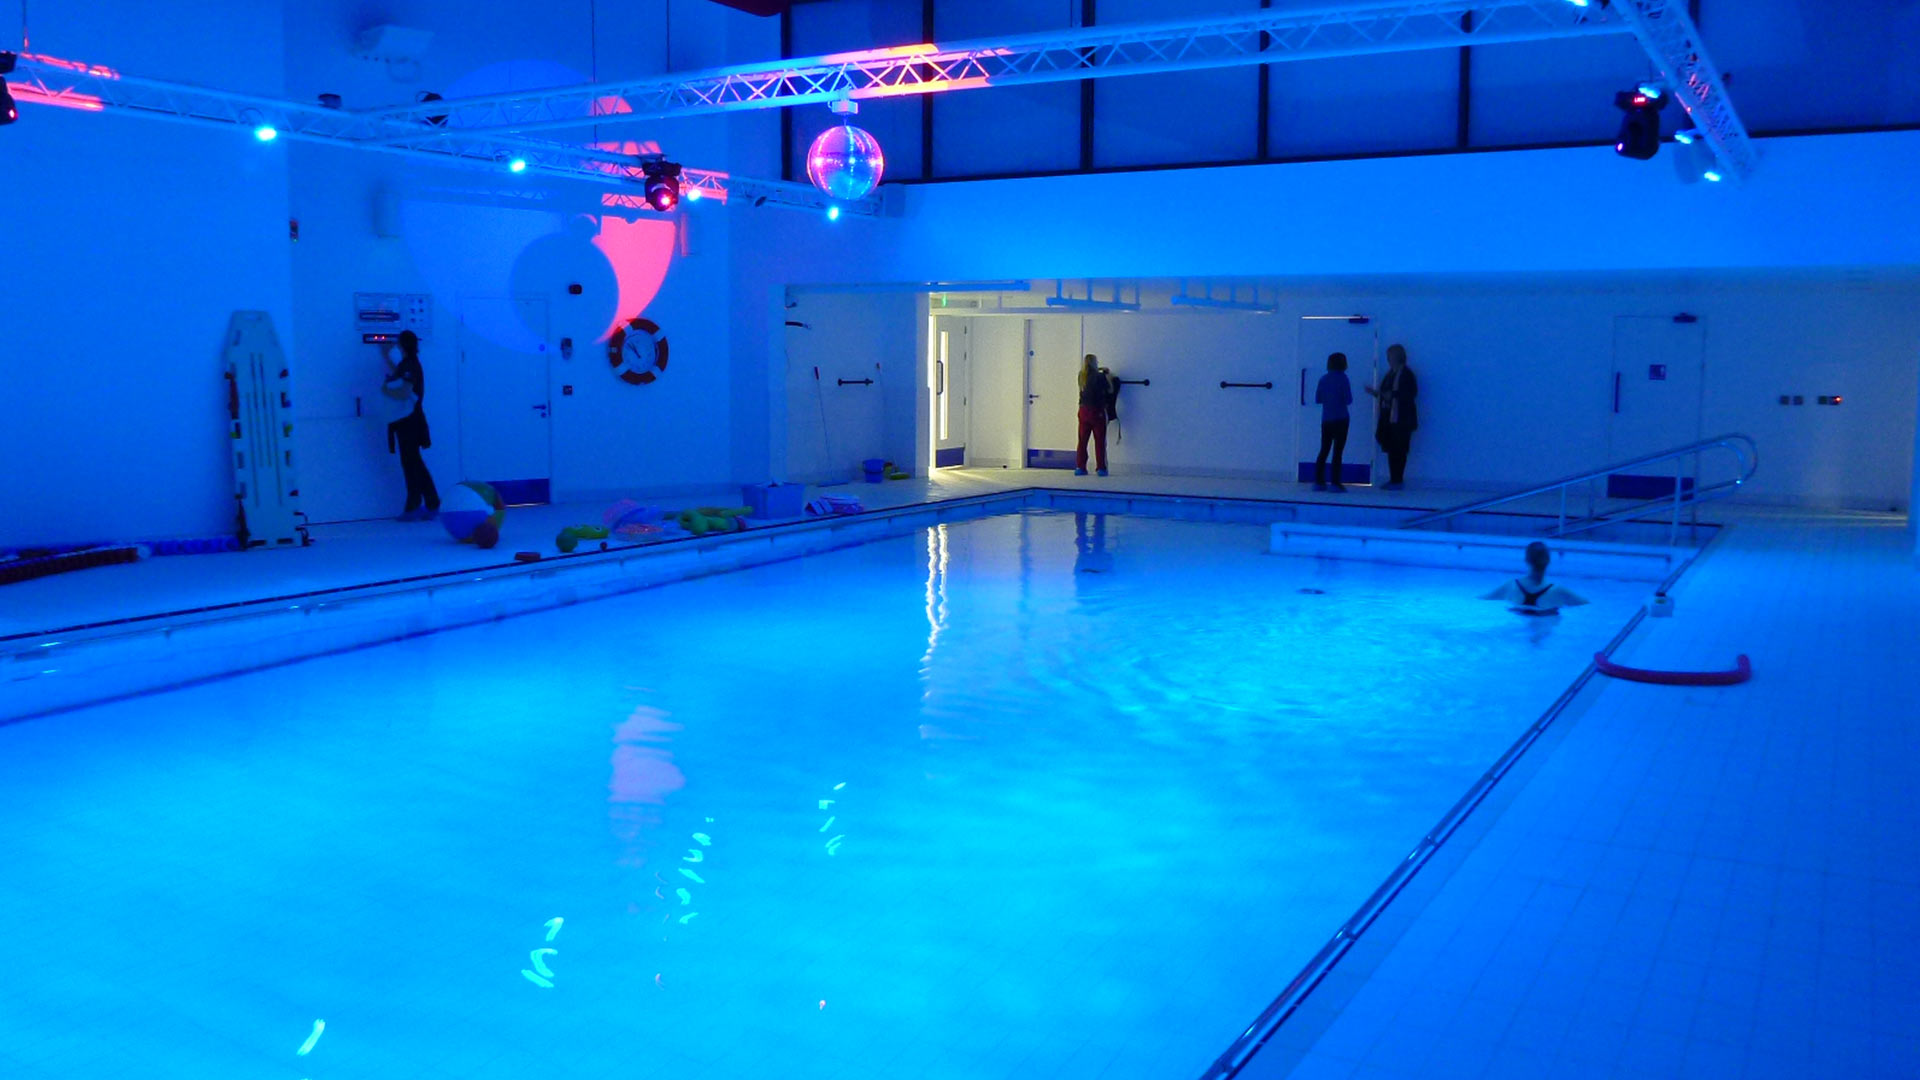 Victoria education centre poole western design architects for Pool design education